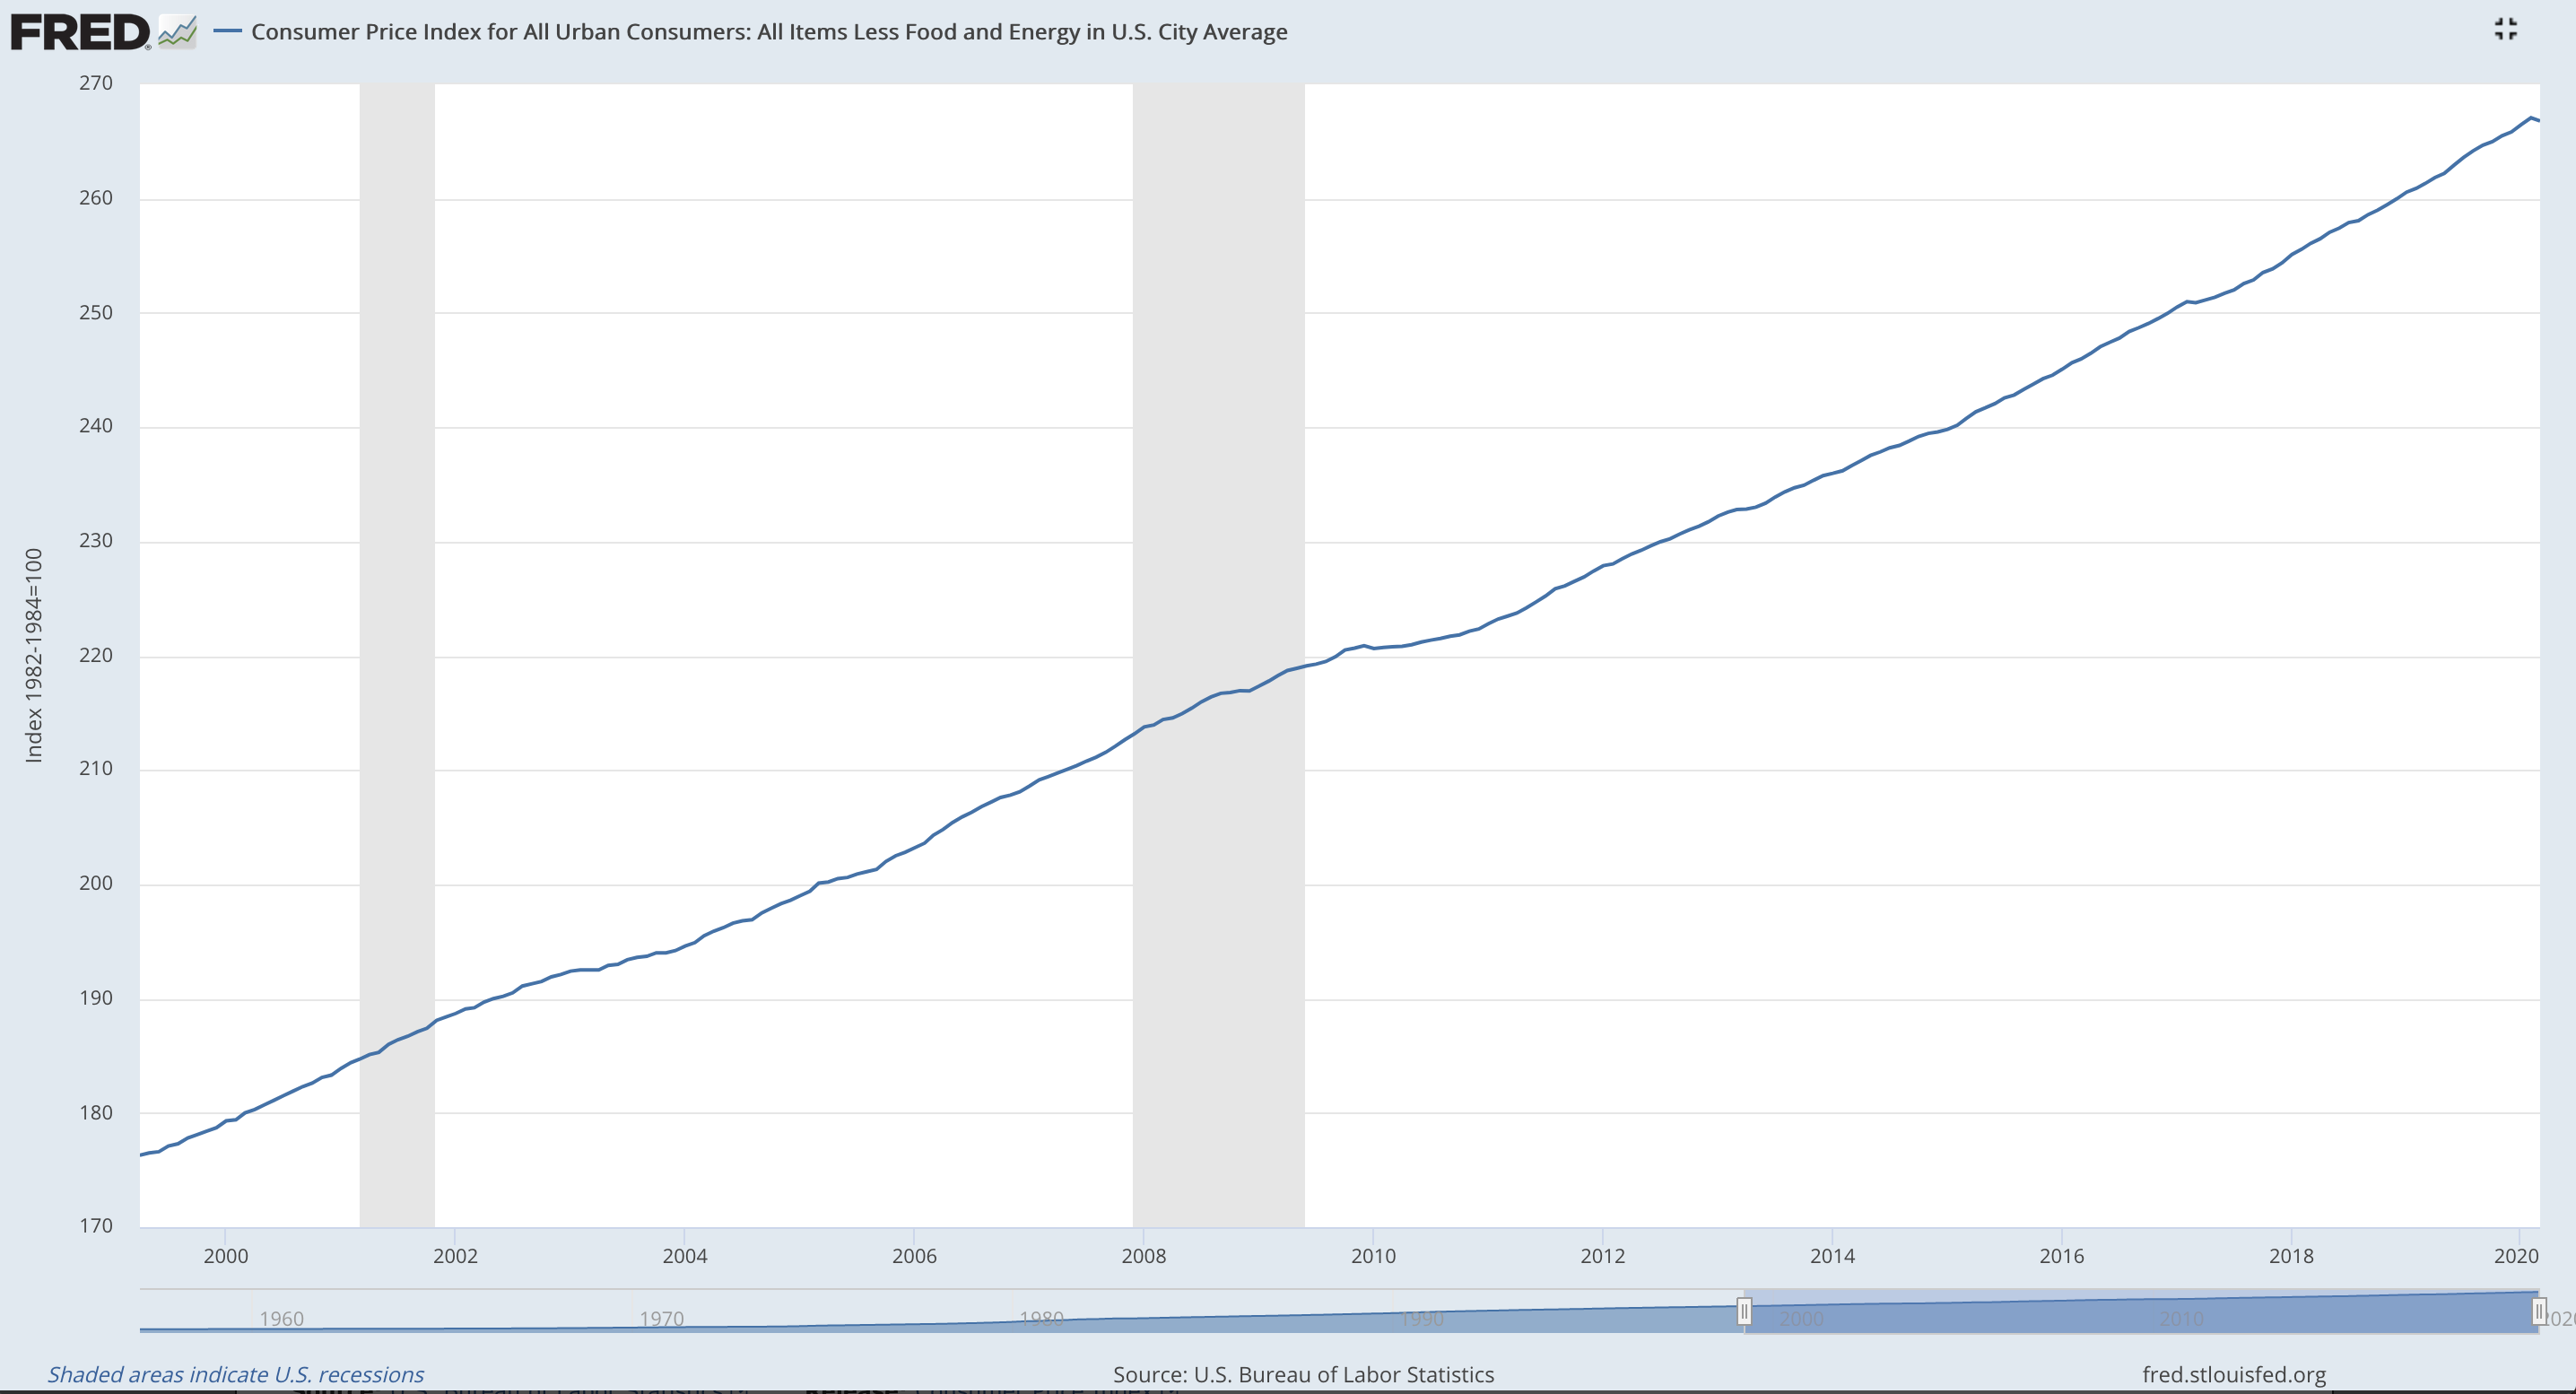 Consumer Price Index For All Urban Consumers: All Items Less Food and Energy in U.S. City Average